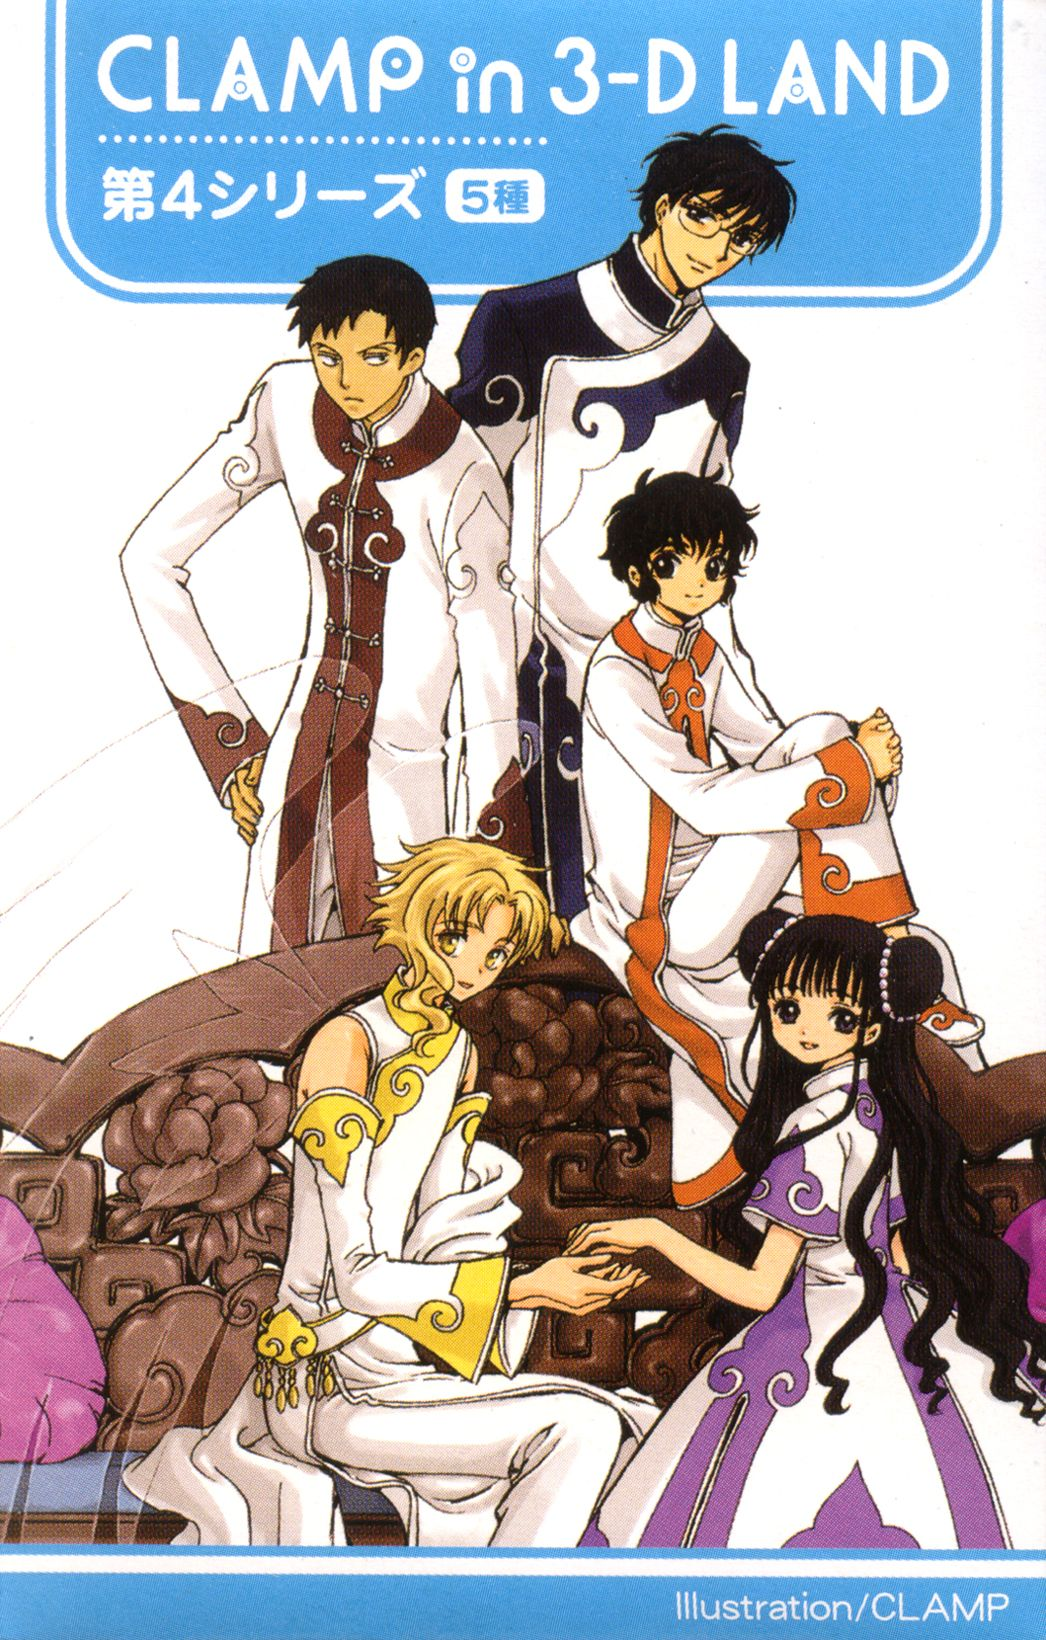 CLAMP, Madhouse, Production I.G, Studio Pierrot, X